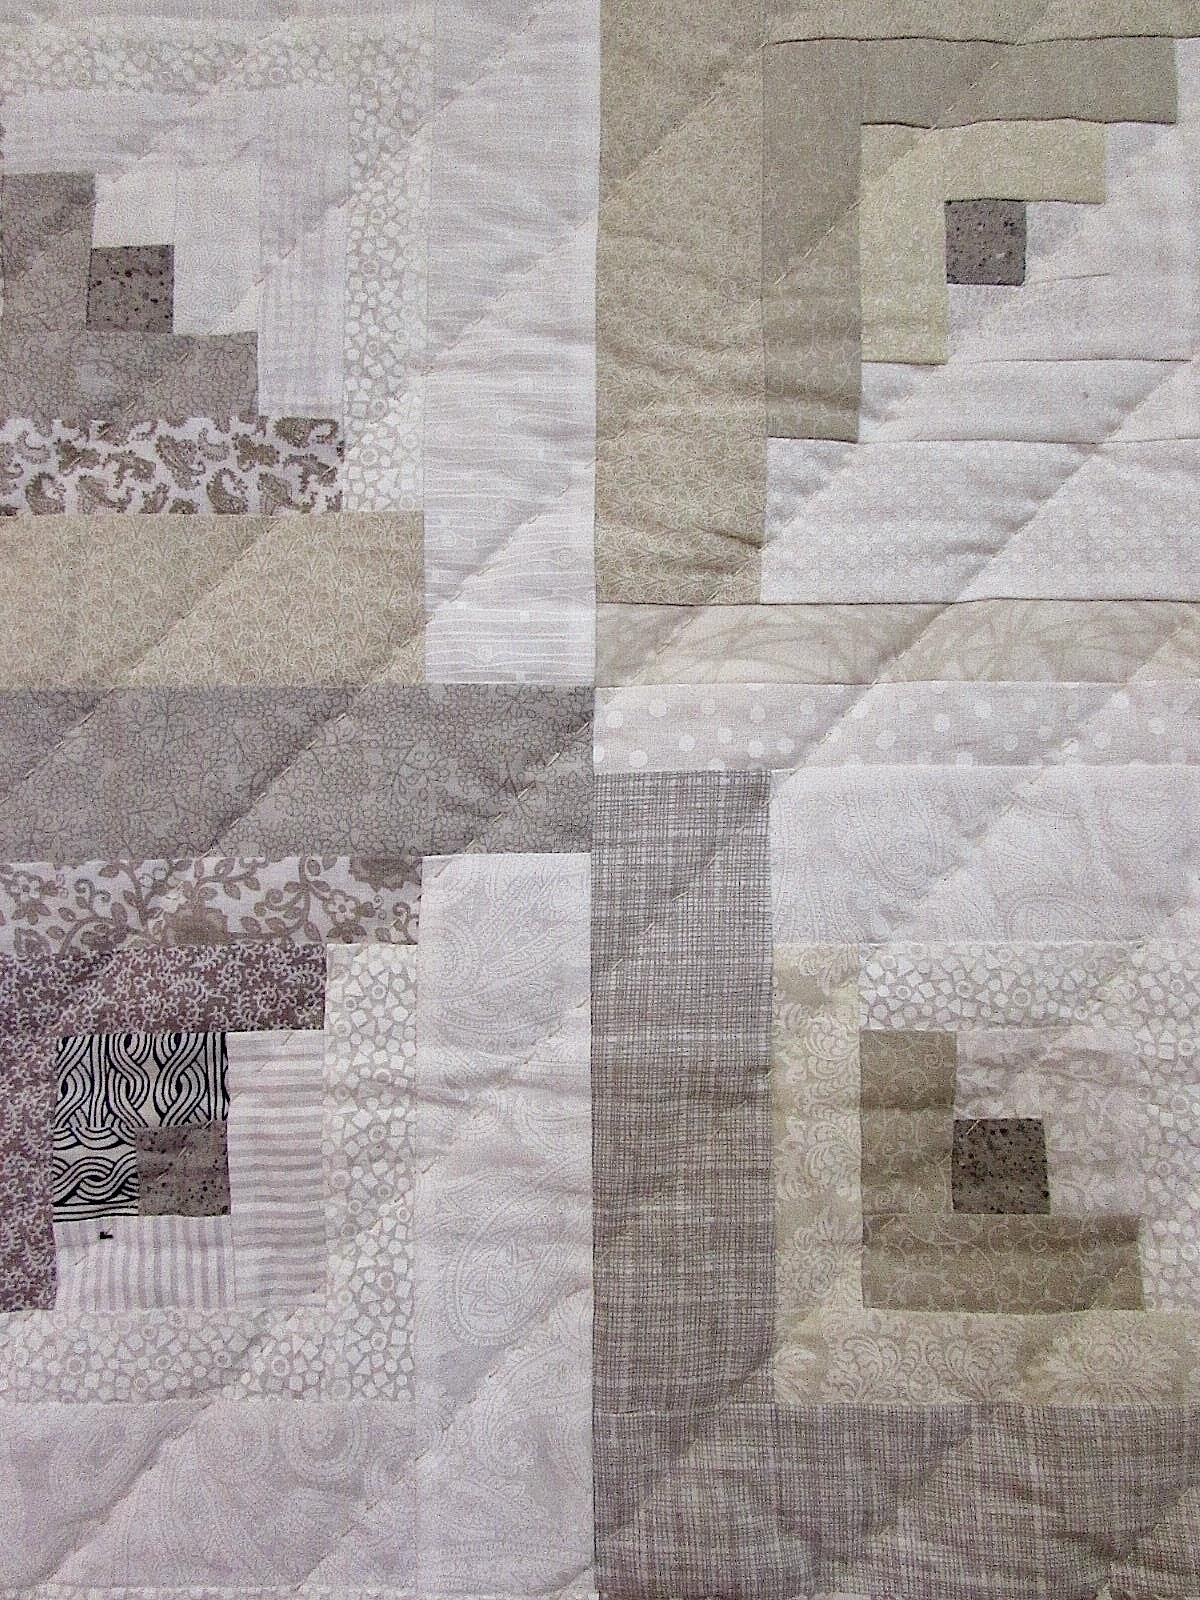 Orange Explains It All Modern Log Cabin Quilt Finish 2014